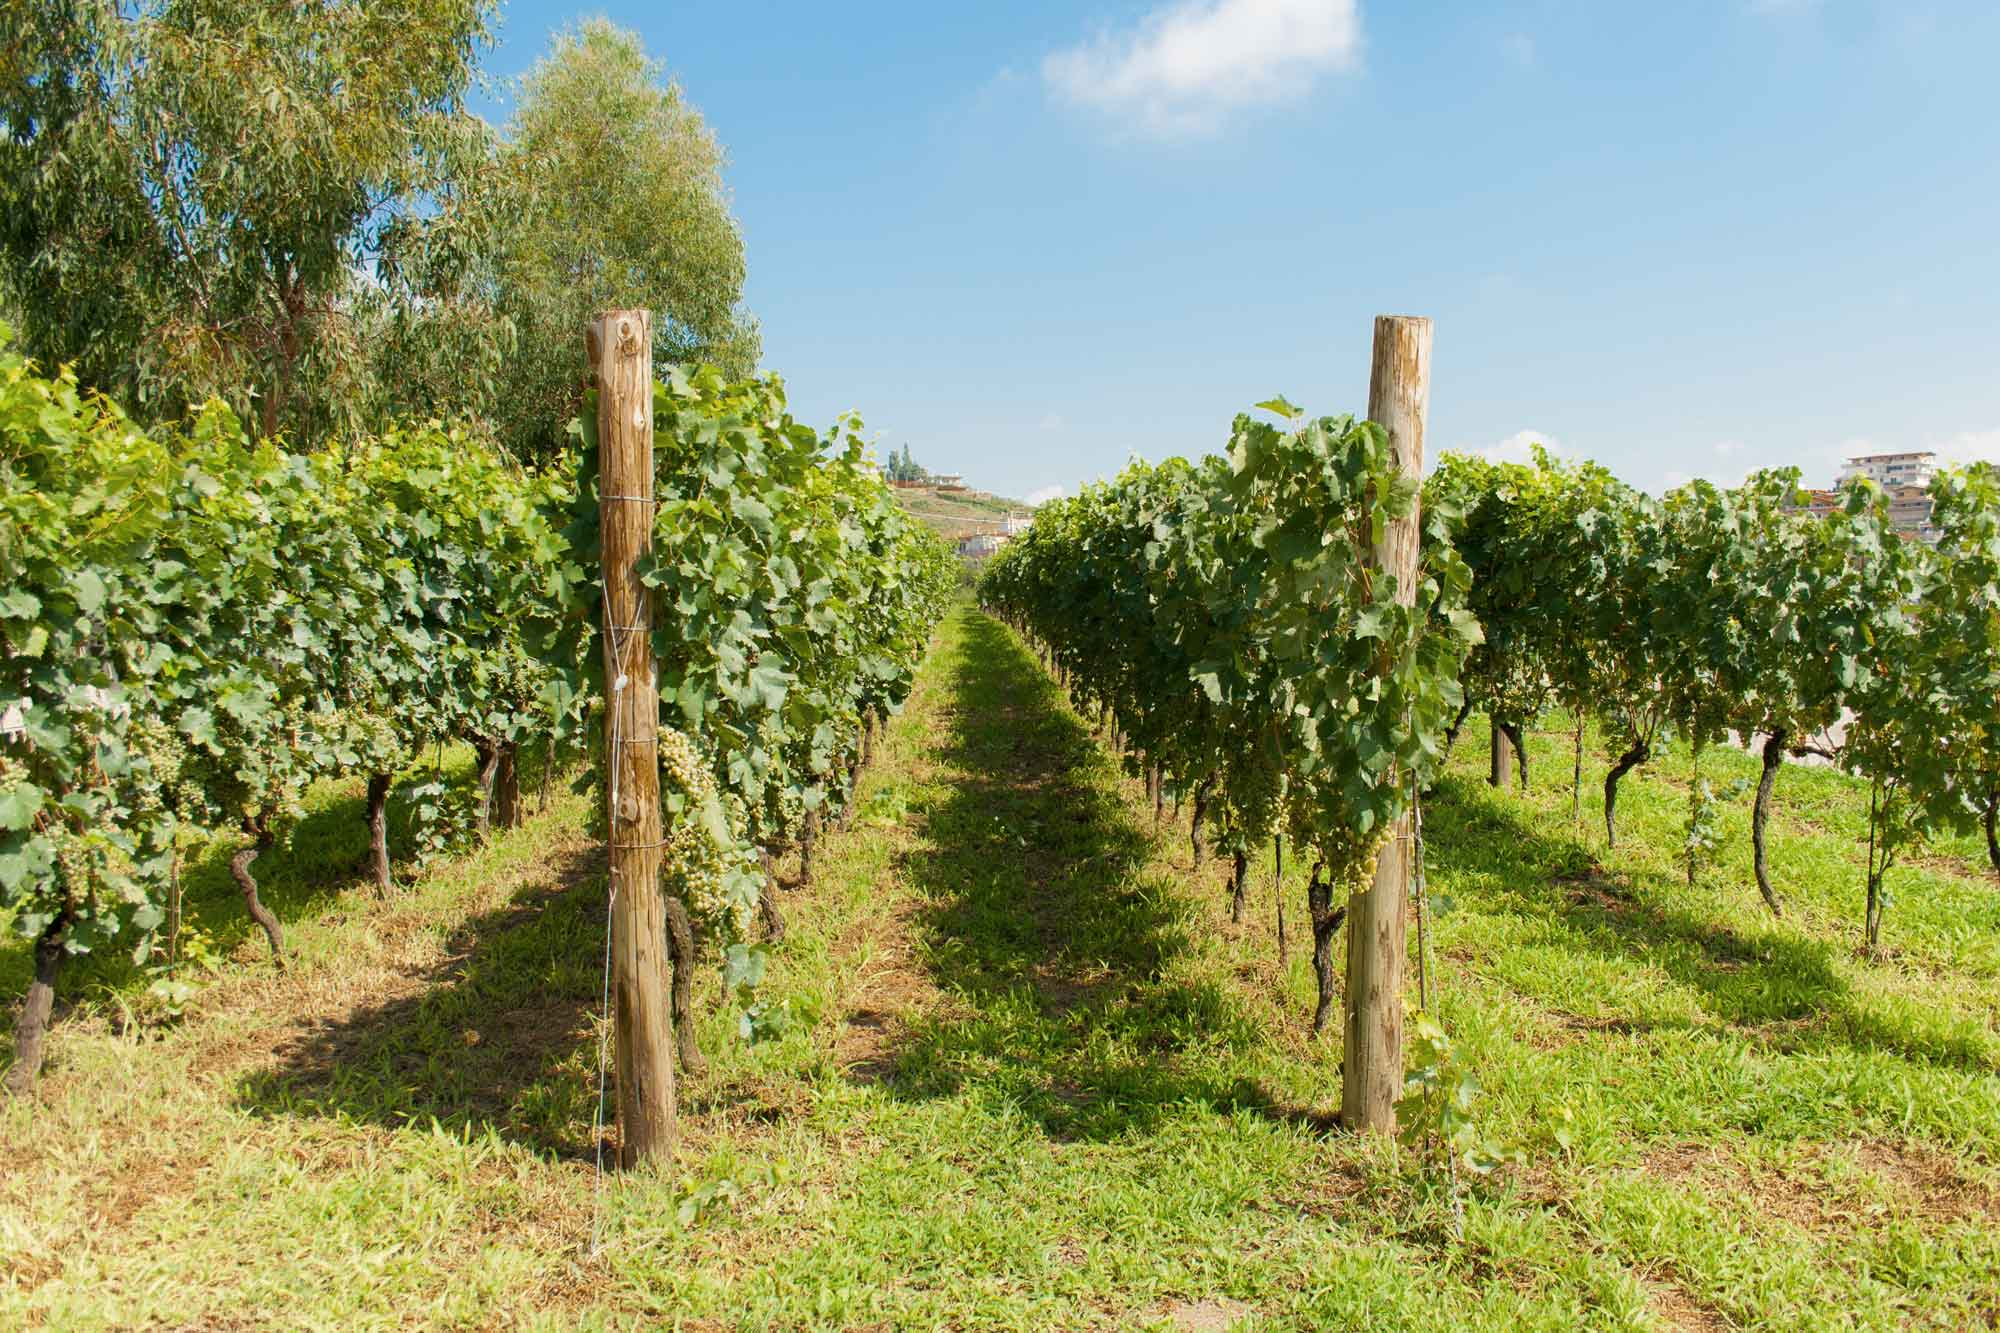 Phlegraean Fields - Vigna Astroni vineyard of Cantine Astroni - Falanghina of Phlegraean Fields